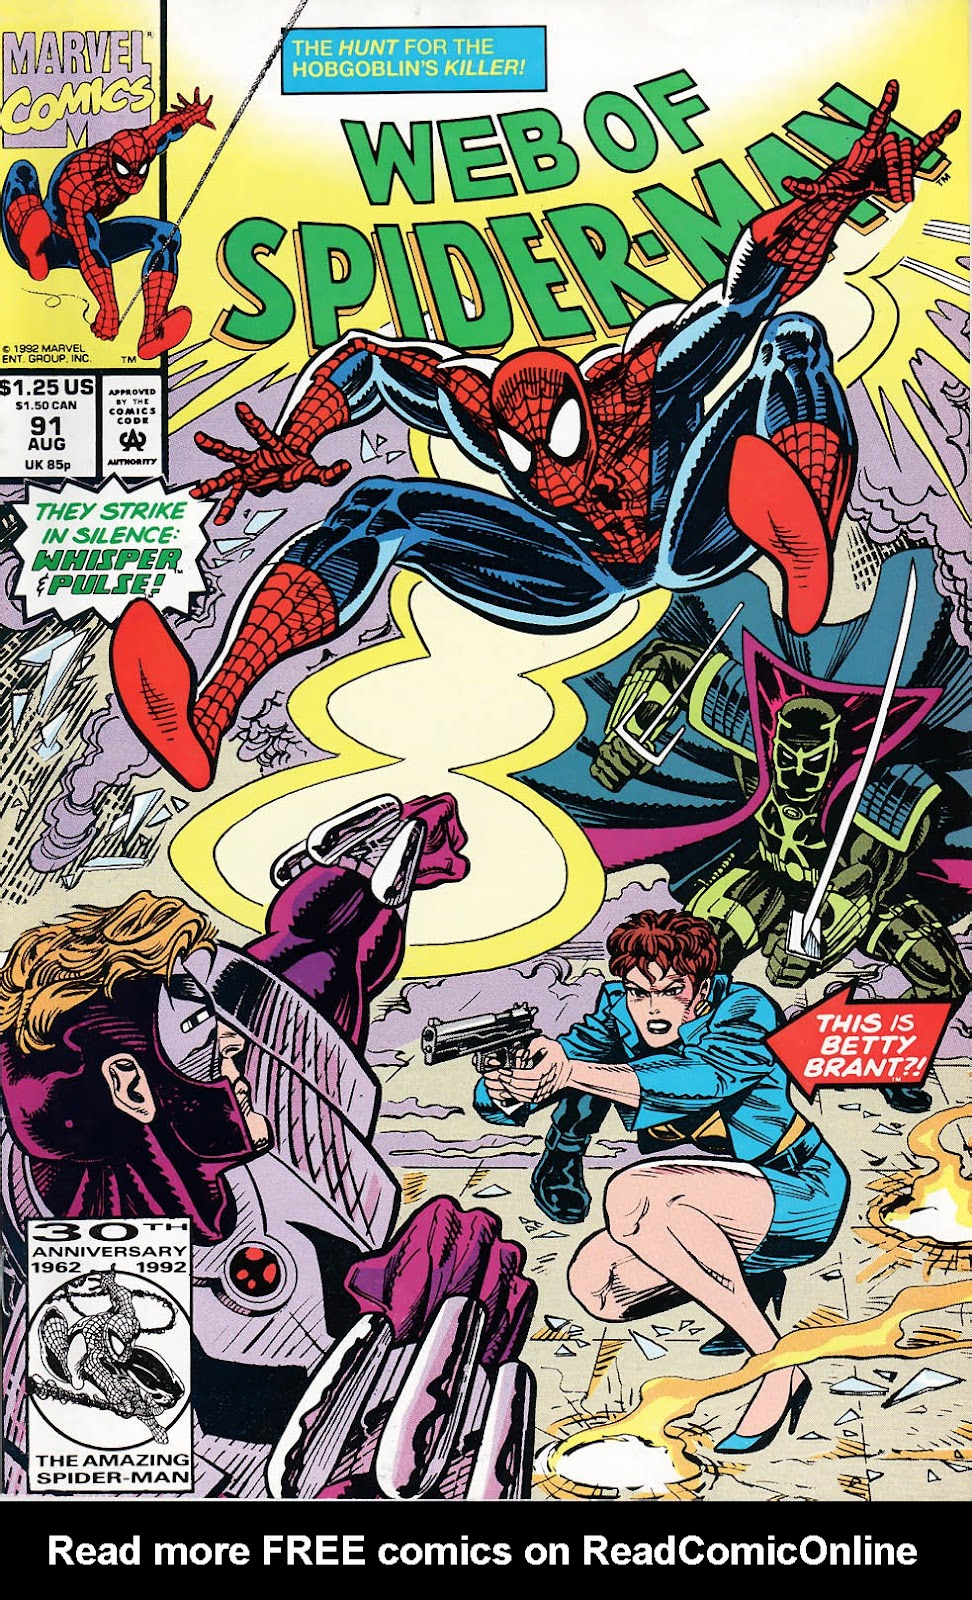 Web of Spider-Man (1985) 91 Page 1